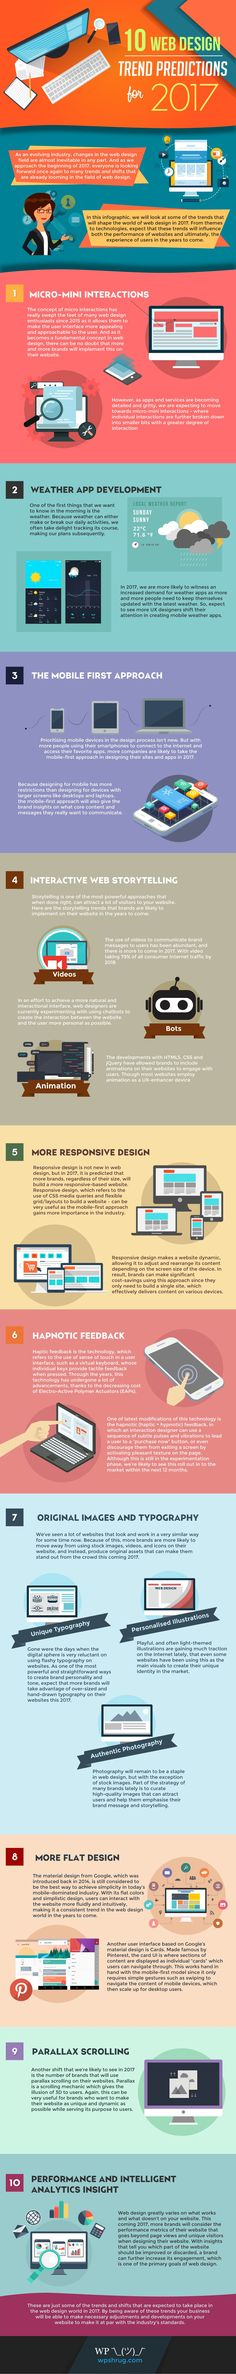 10 Web Design Predictions for 2017 [Infographic] - http://topseosoft.com/10-web-design-predictions-for-2017-infographic/